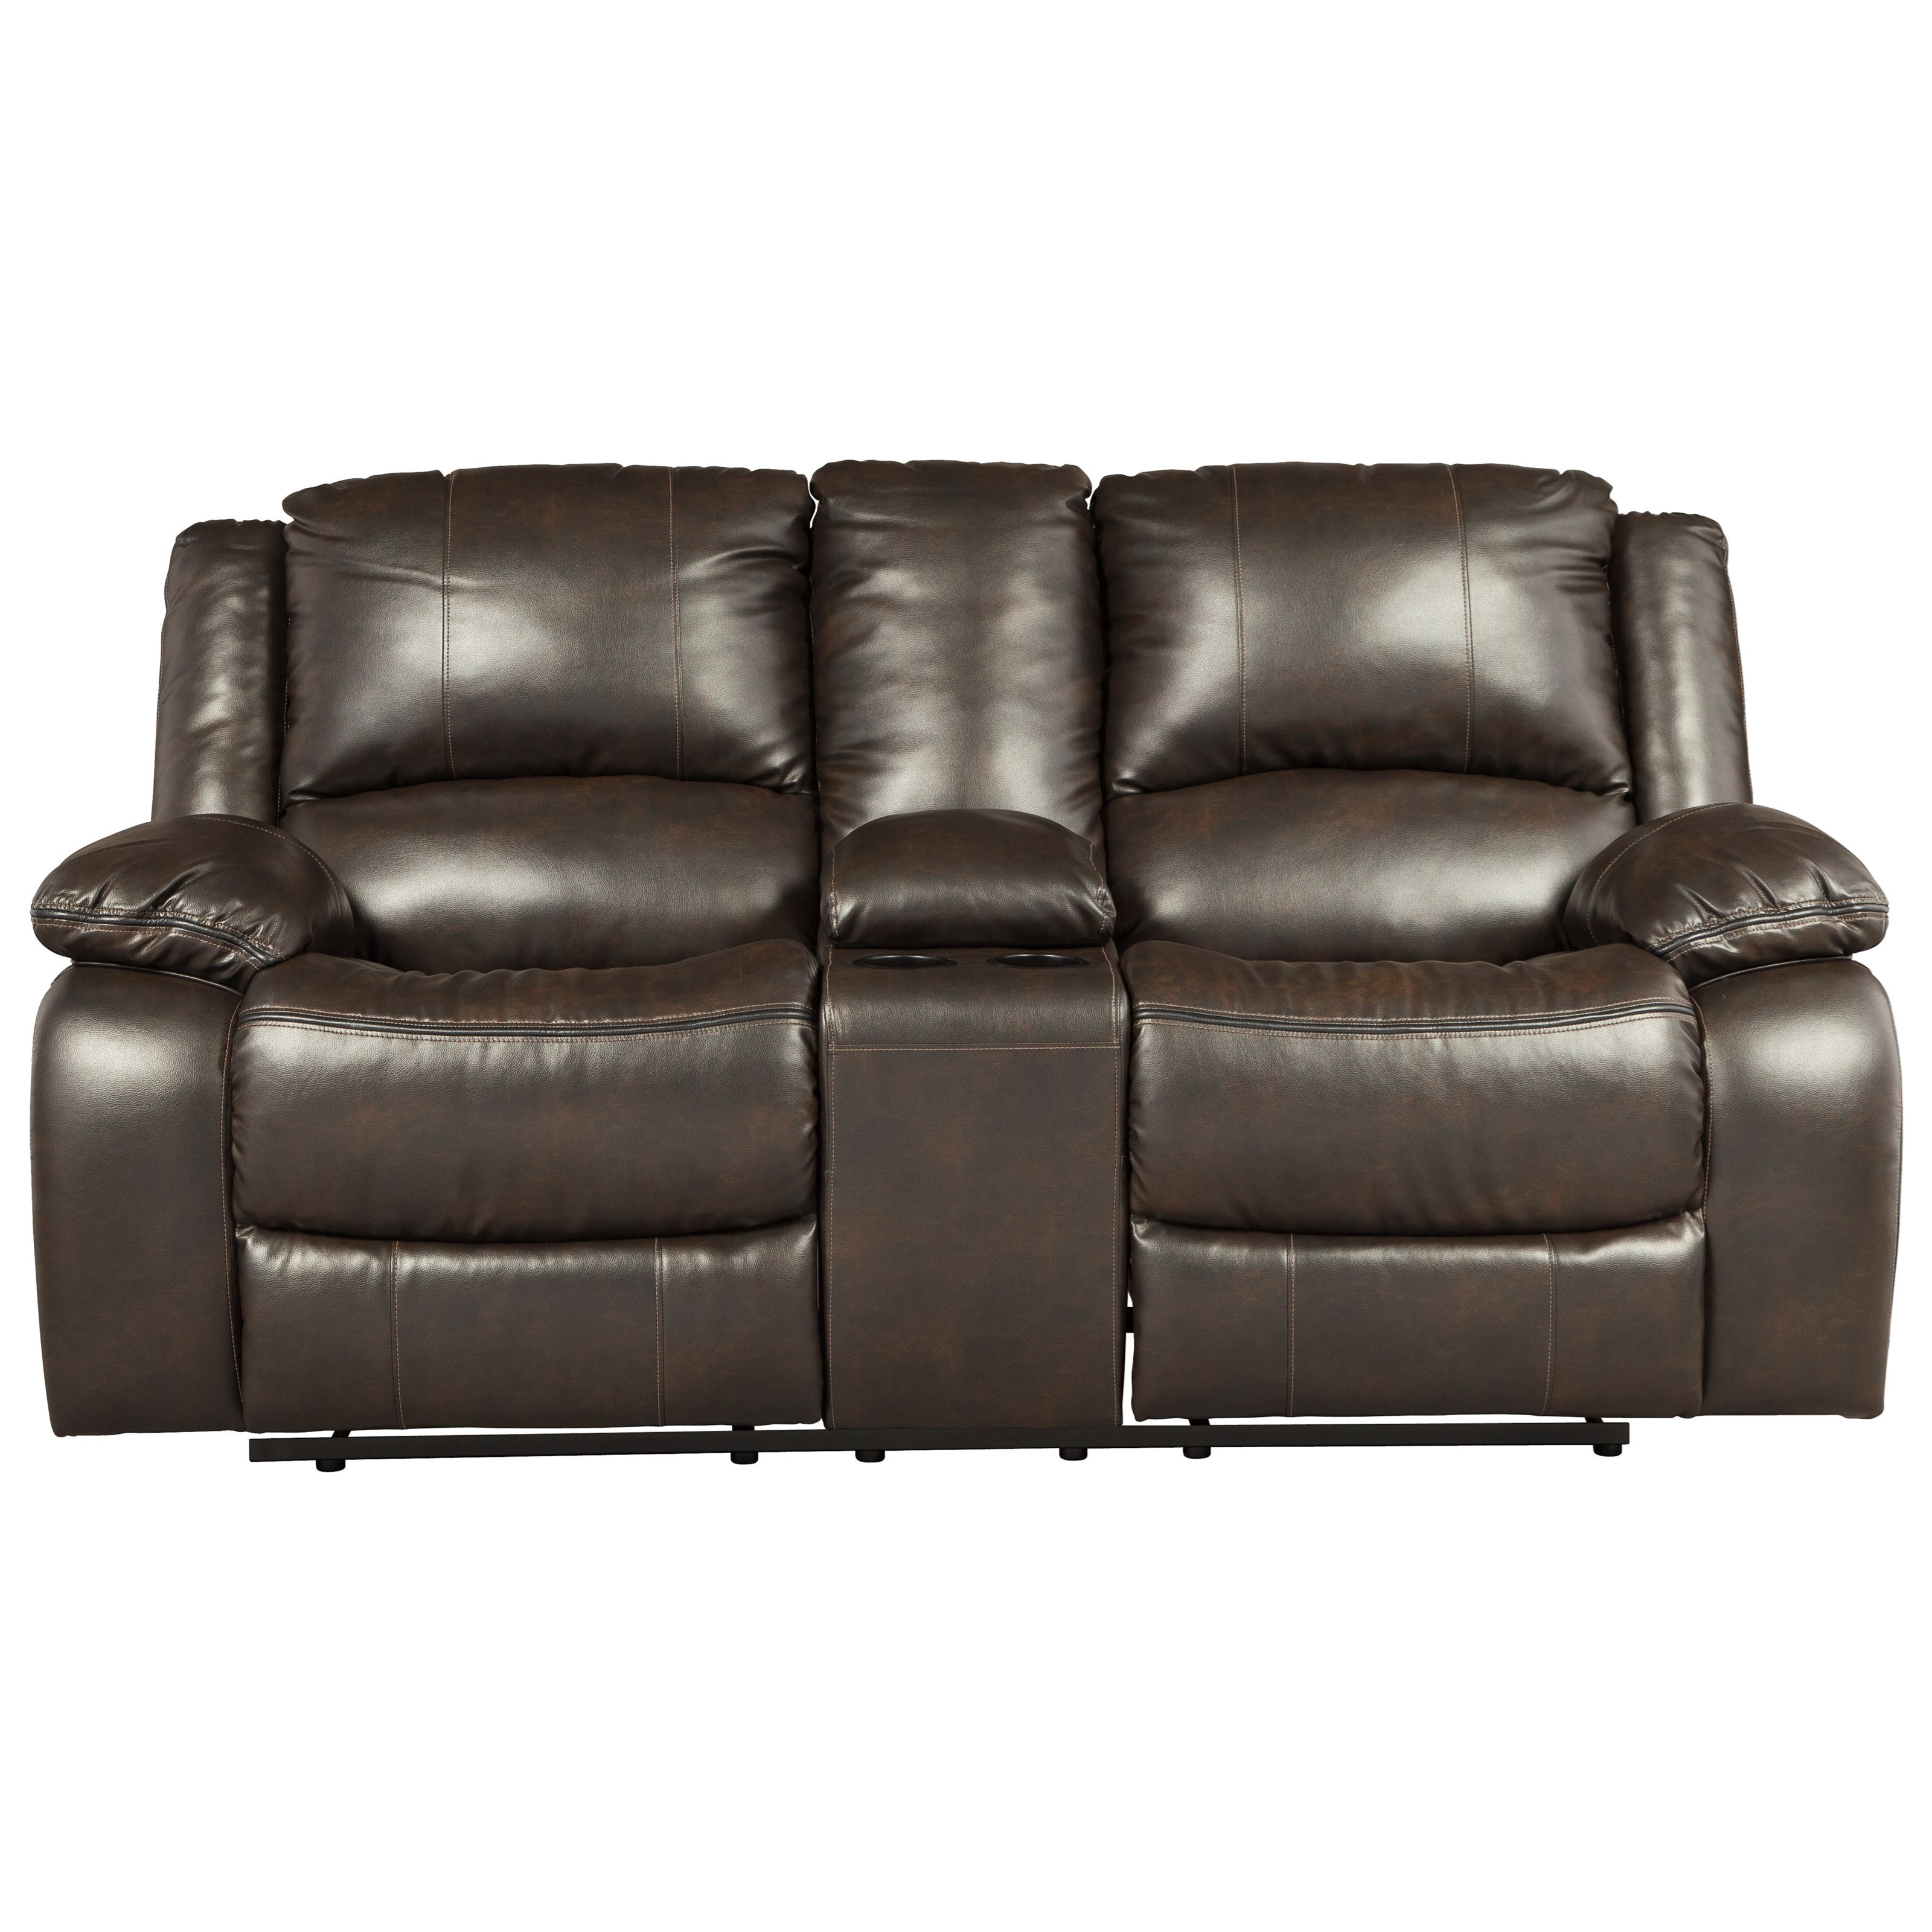 faux leather power reclining sofa bolia scandinavia pris signature design by ashley slayton 8920196